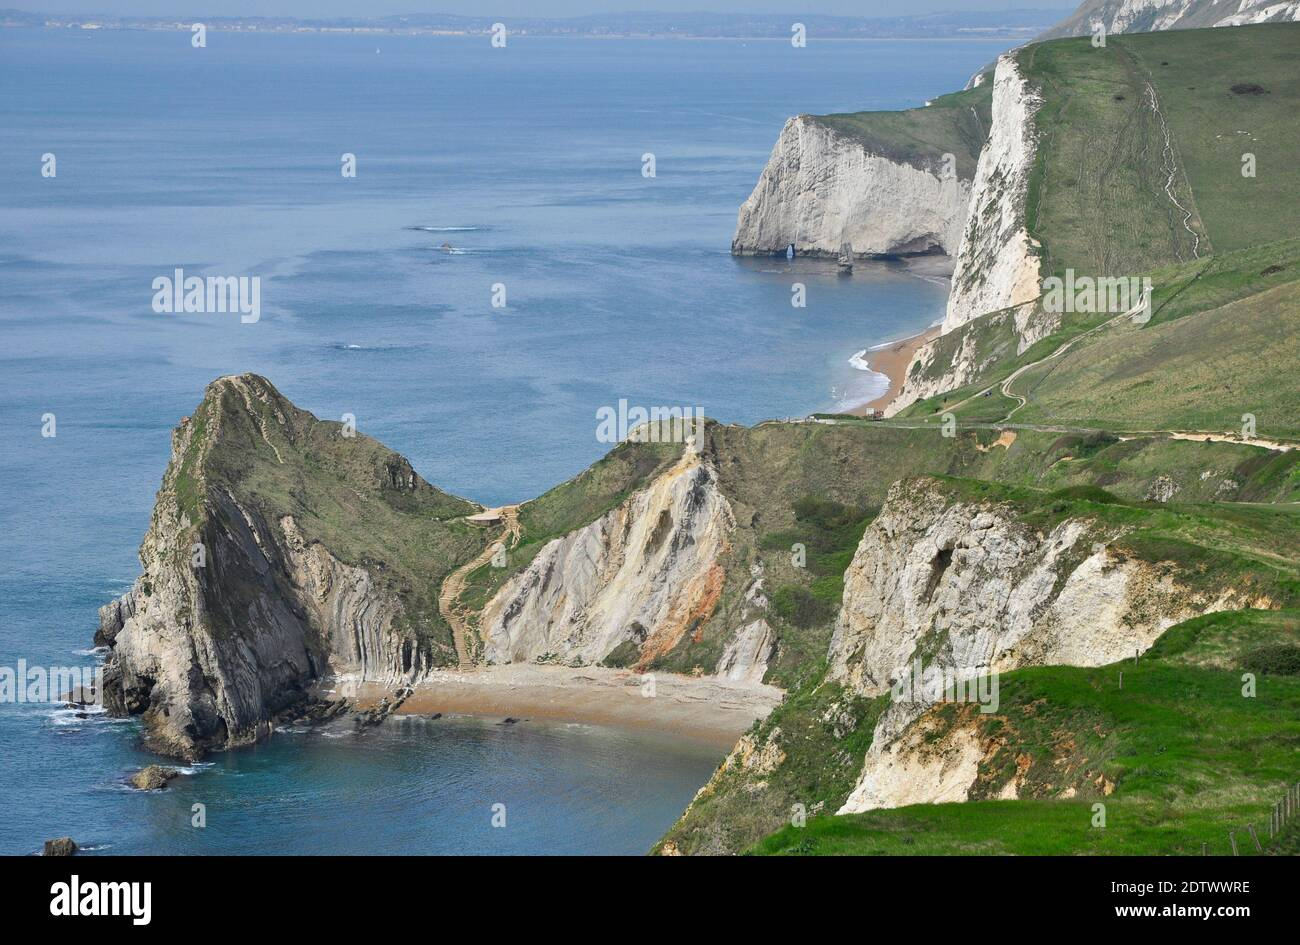 Looking west with Durdle Door and the chalk cliffs of Swyre Head and Bat's Head.Part of the Jurrasic coast of Dorset.UK Stock Photo